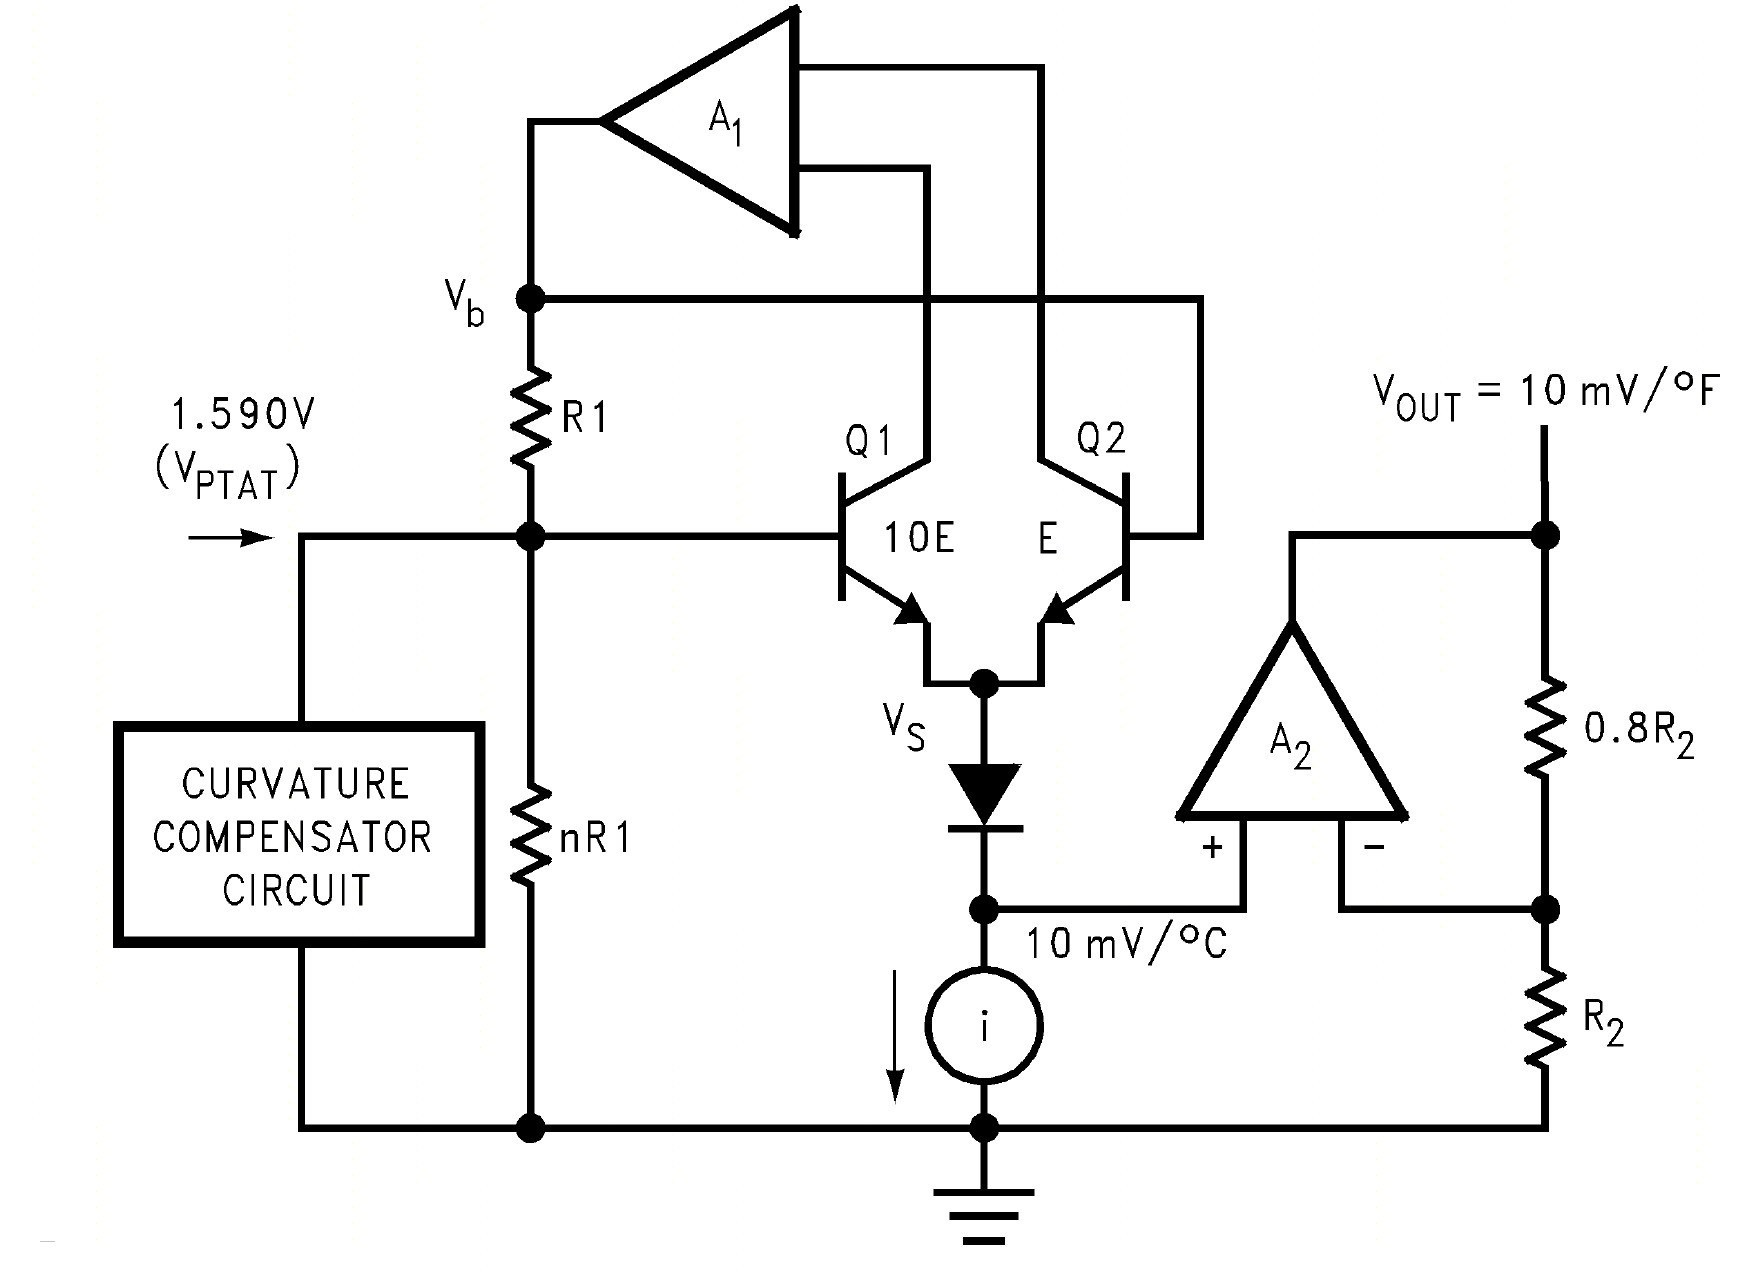 hight resolution of 1753x1282 simple electric circuit diagram basic electrical circuit diagram circuit sketch